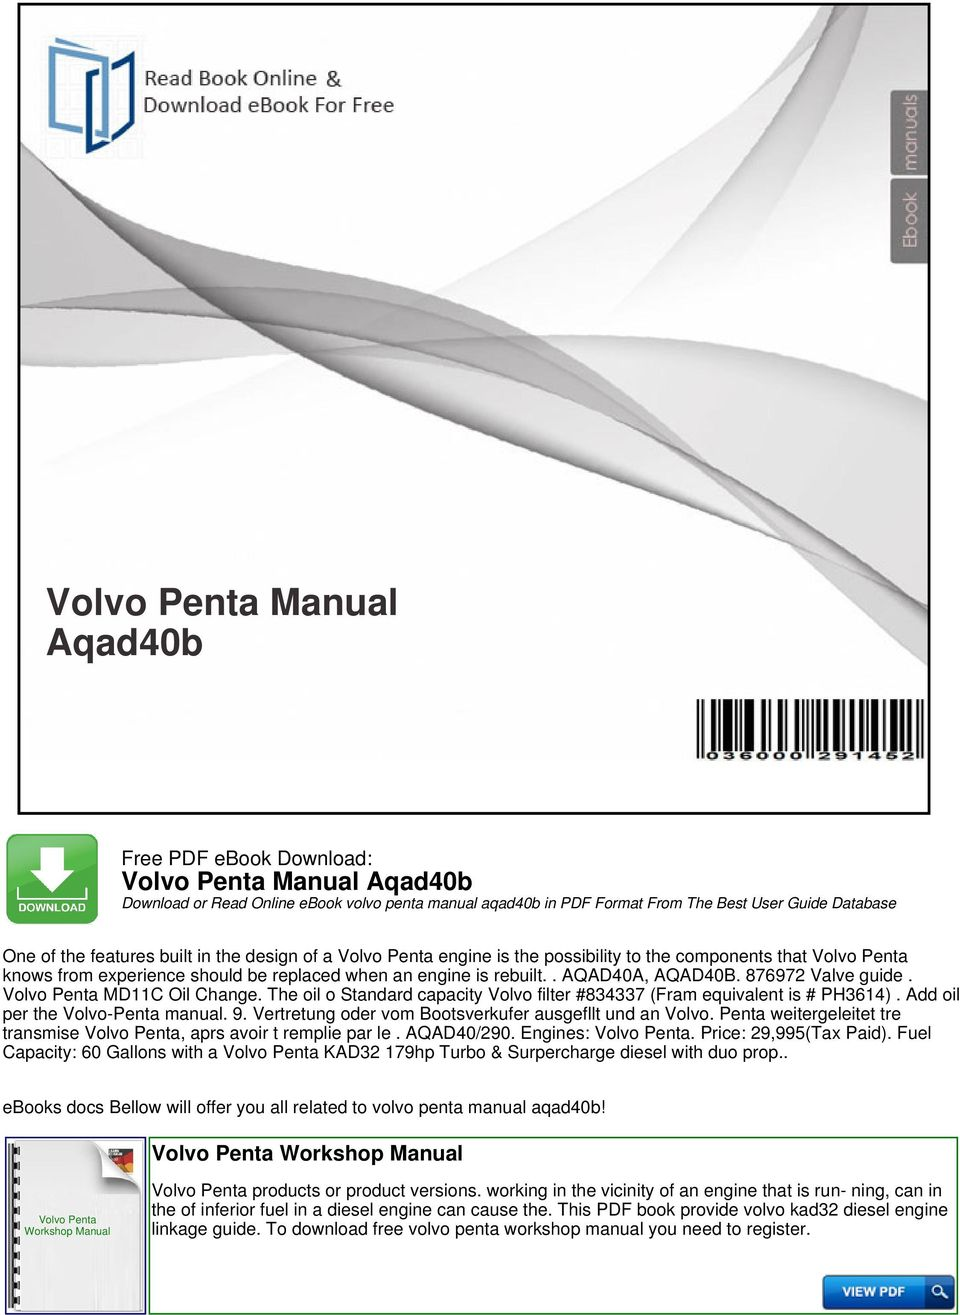 Volvo penta manual aqad40b pdf the oil o standard capacity volvo filter 834337 fram equivalent is ph3614 fandeluxe Image collections